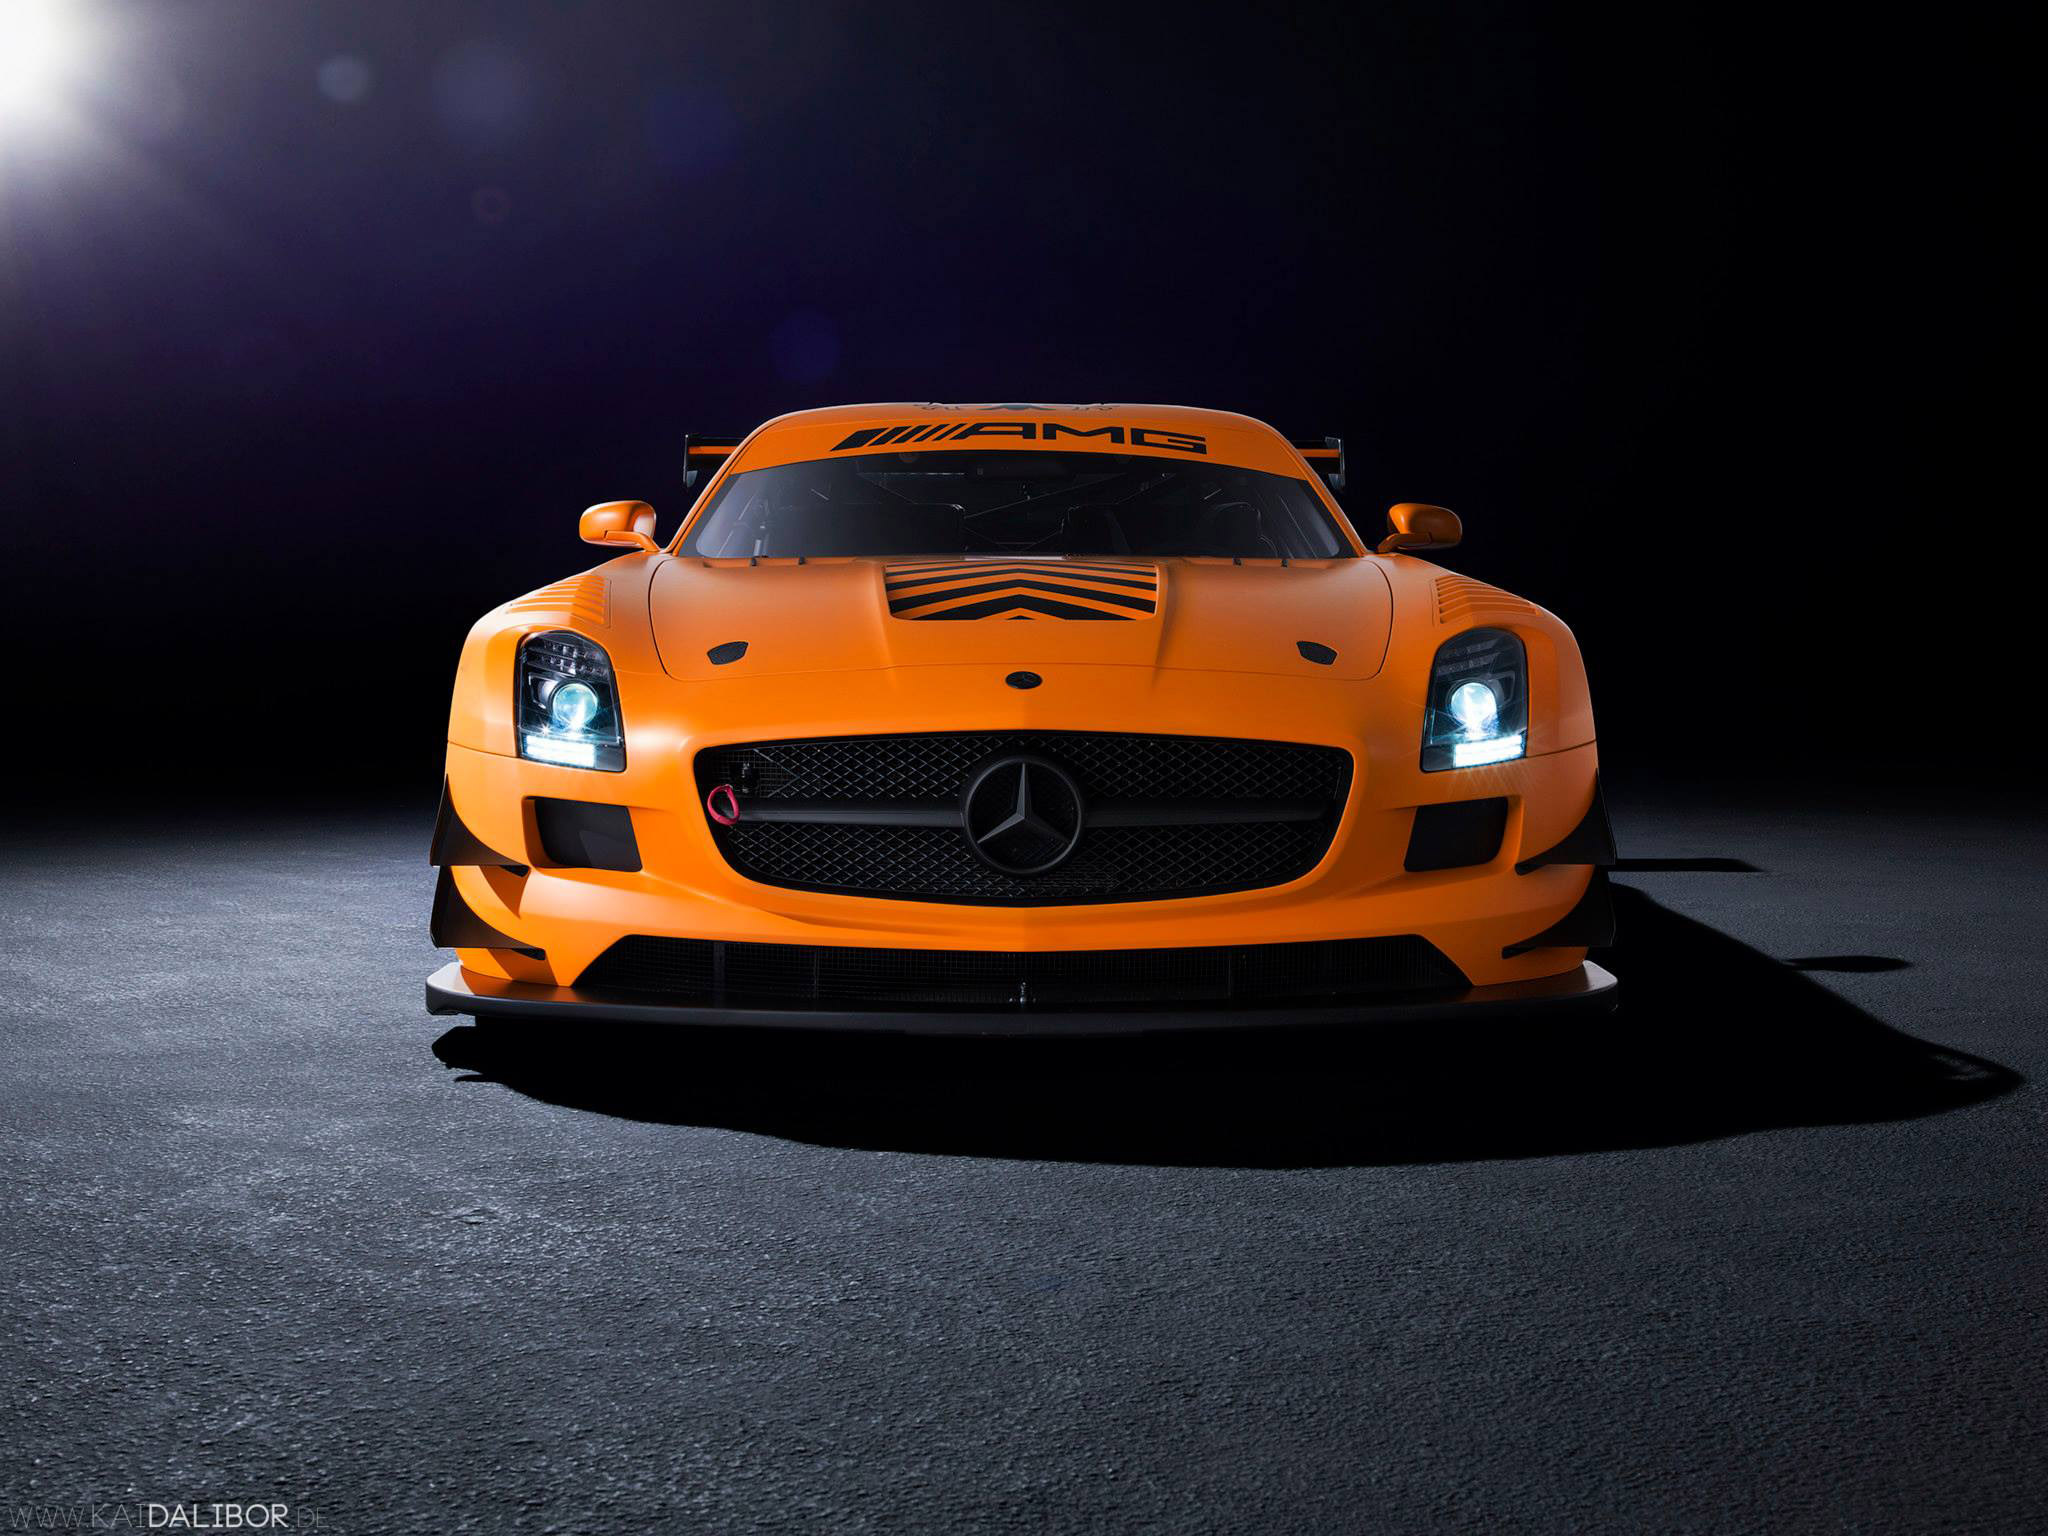 Mercedes Benz Sls Amg Review >> Sievers Tuning Mercedes-Benz SLS AMG GT3 45th Anniversary ...